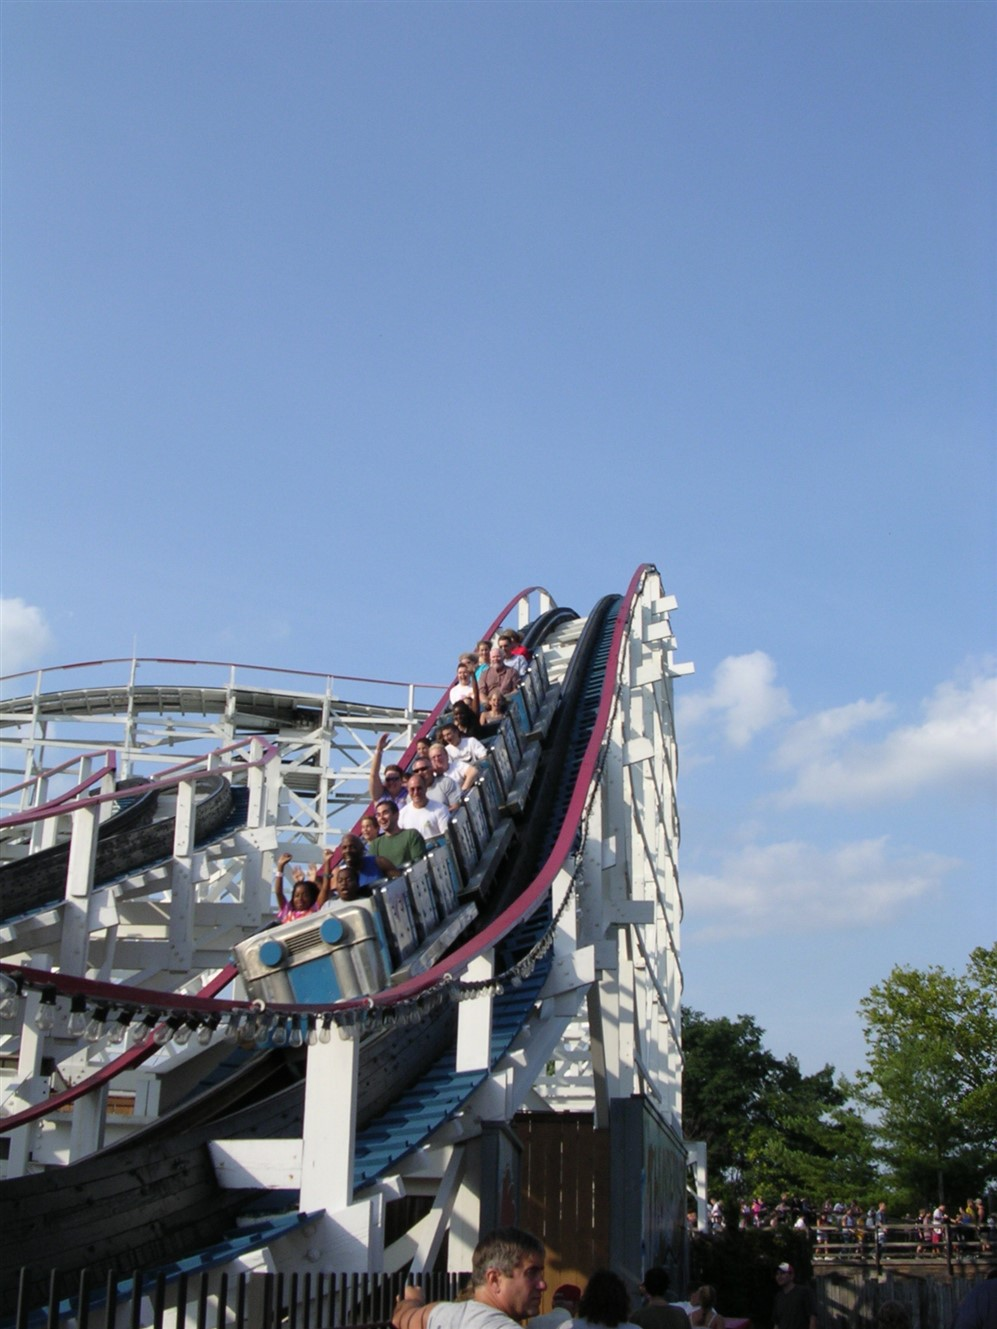 2004 08 Kennywood Park 31